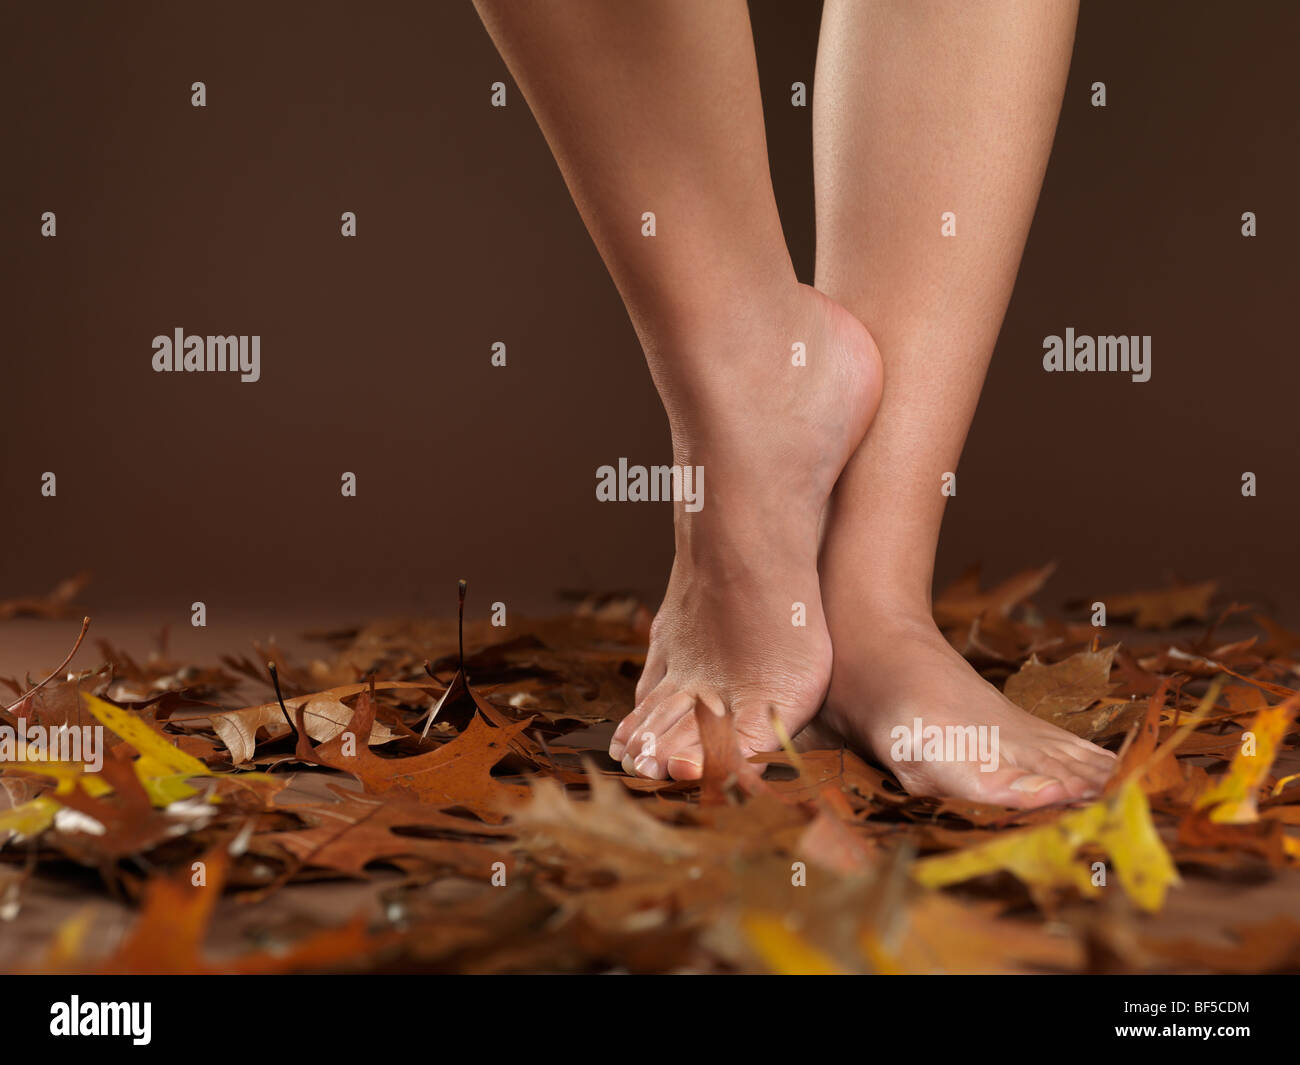 Closeup of legs of a woman standing barefoot on autumn leaves - Stock Image